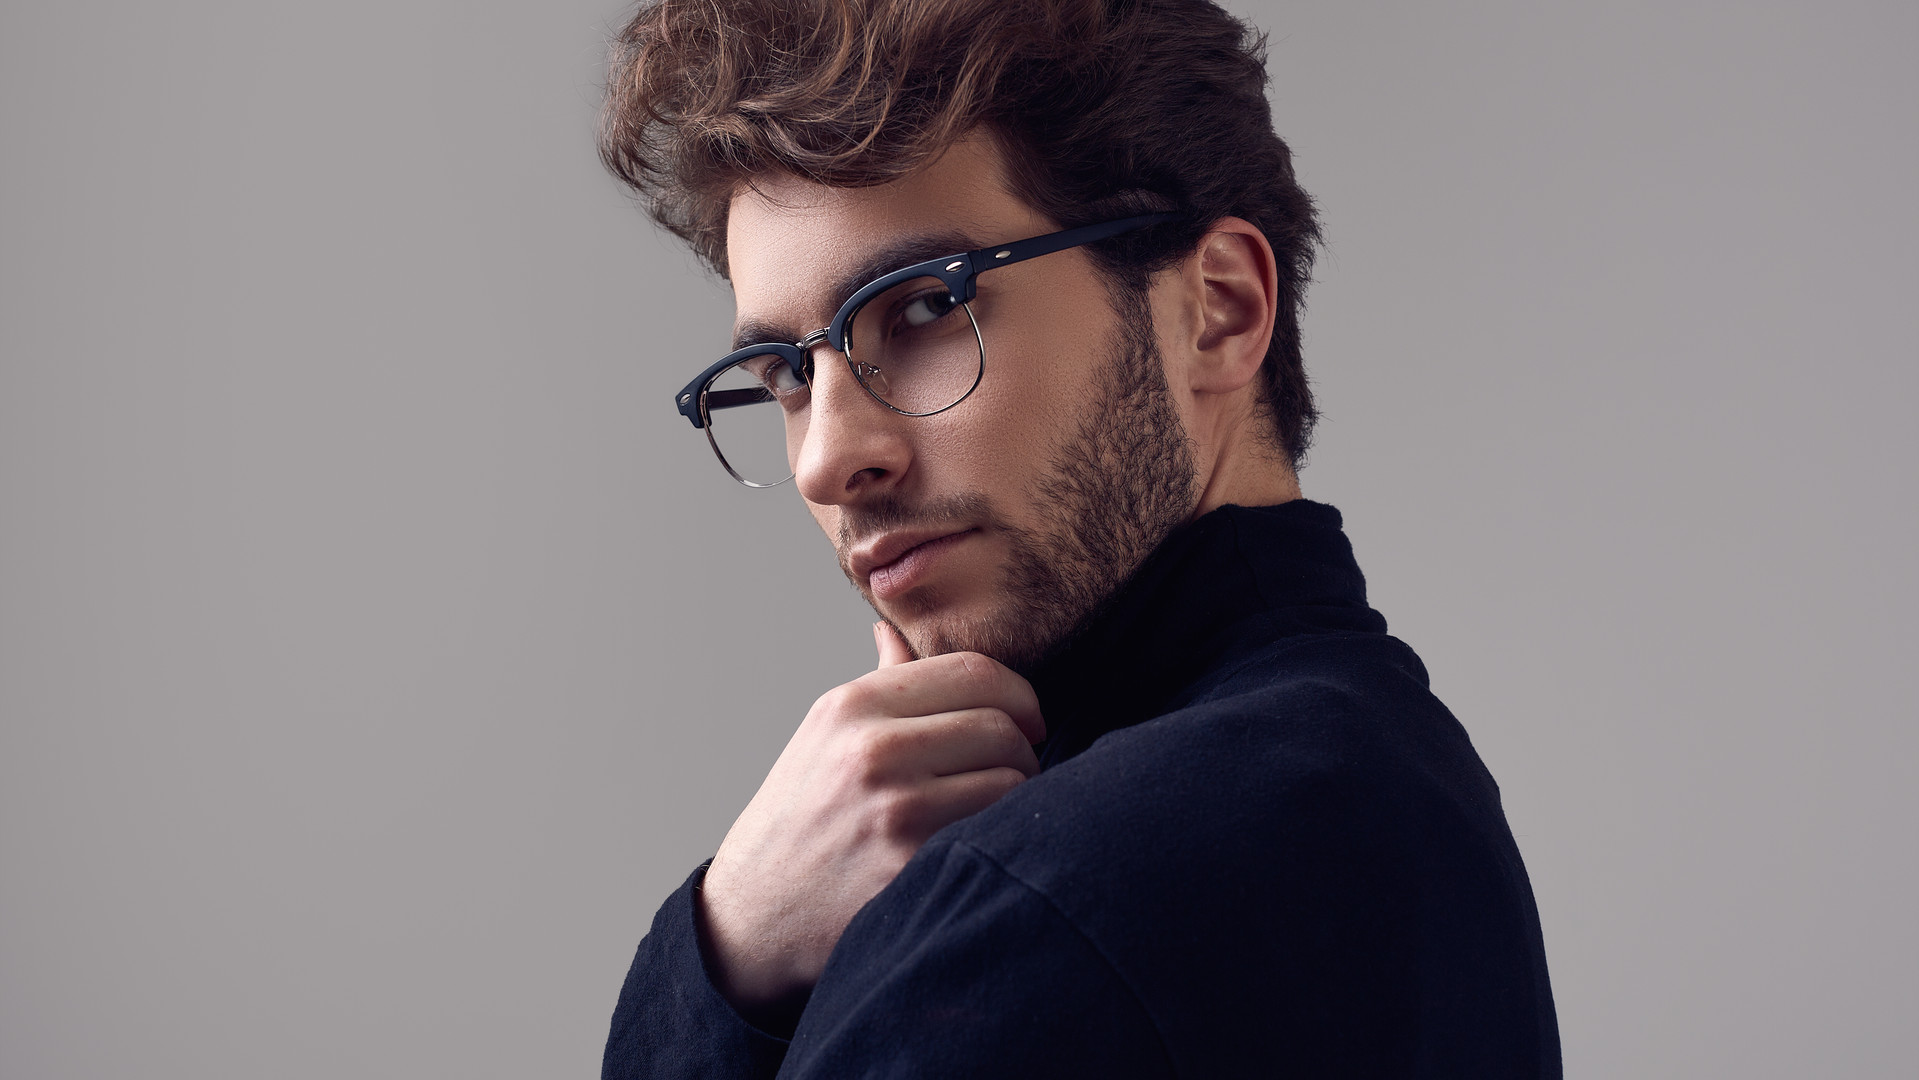 handsome-elegant-man-with-curly-hair-wea